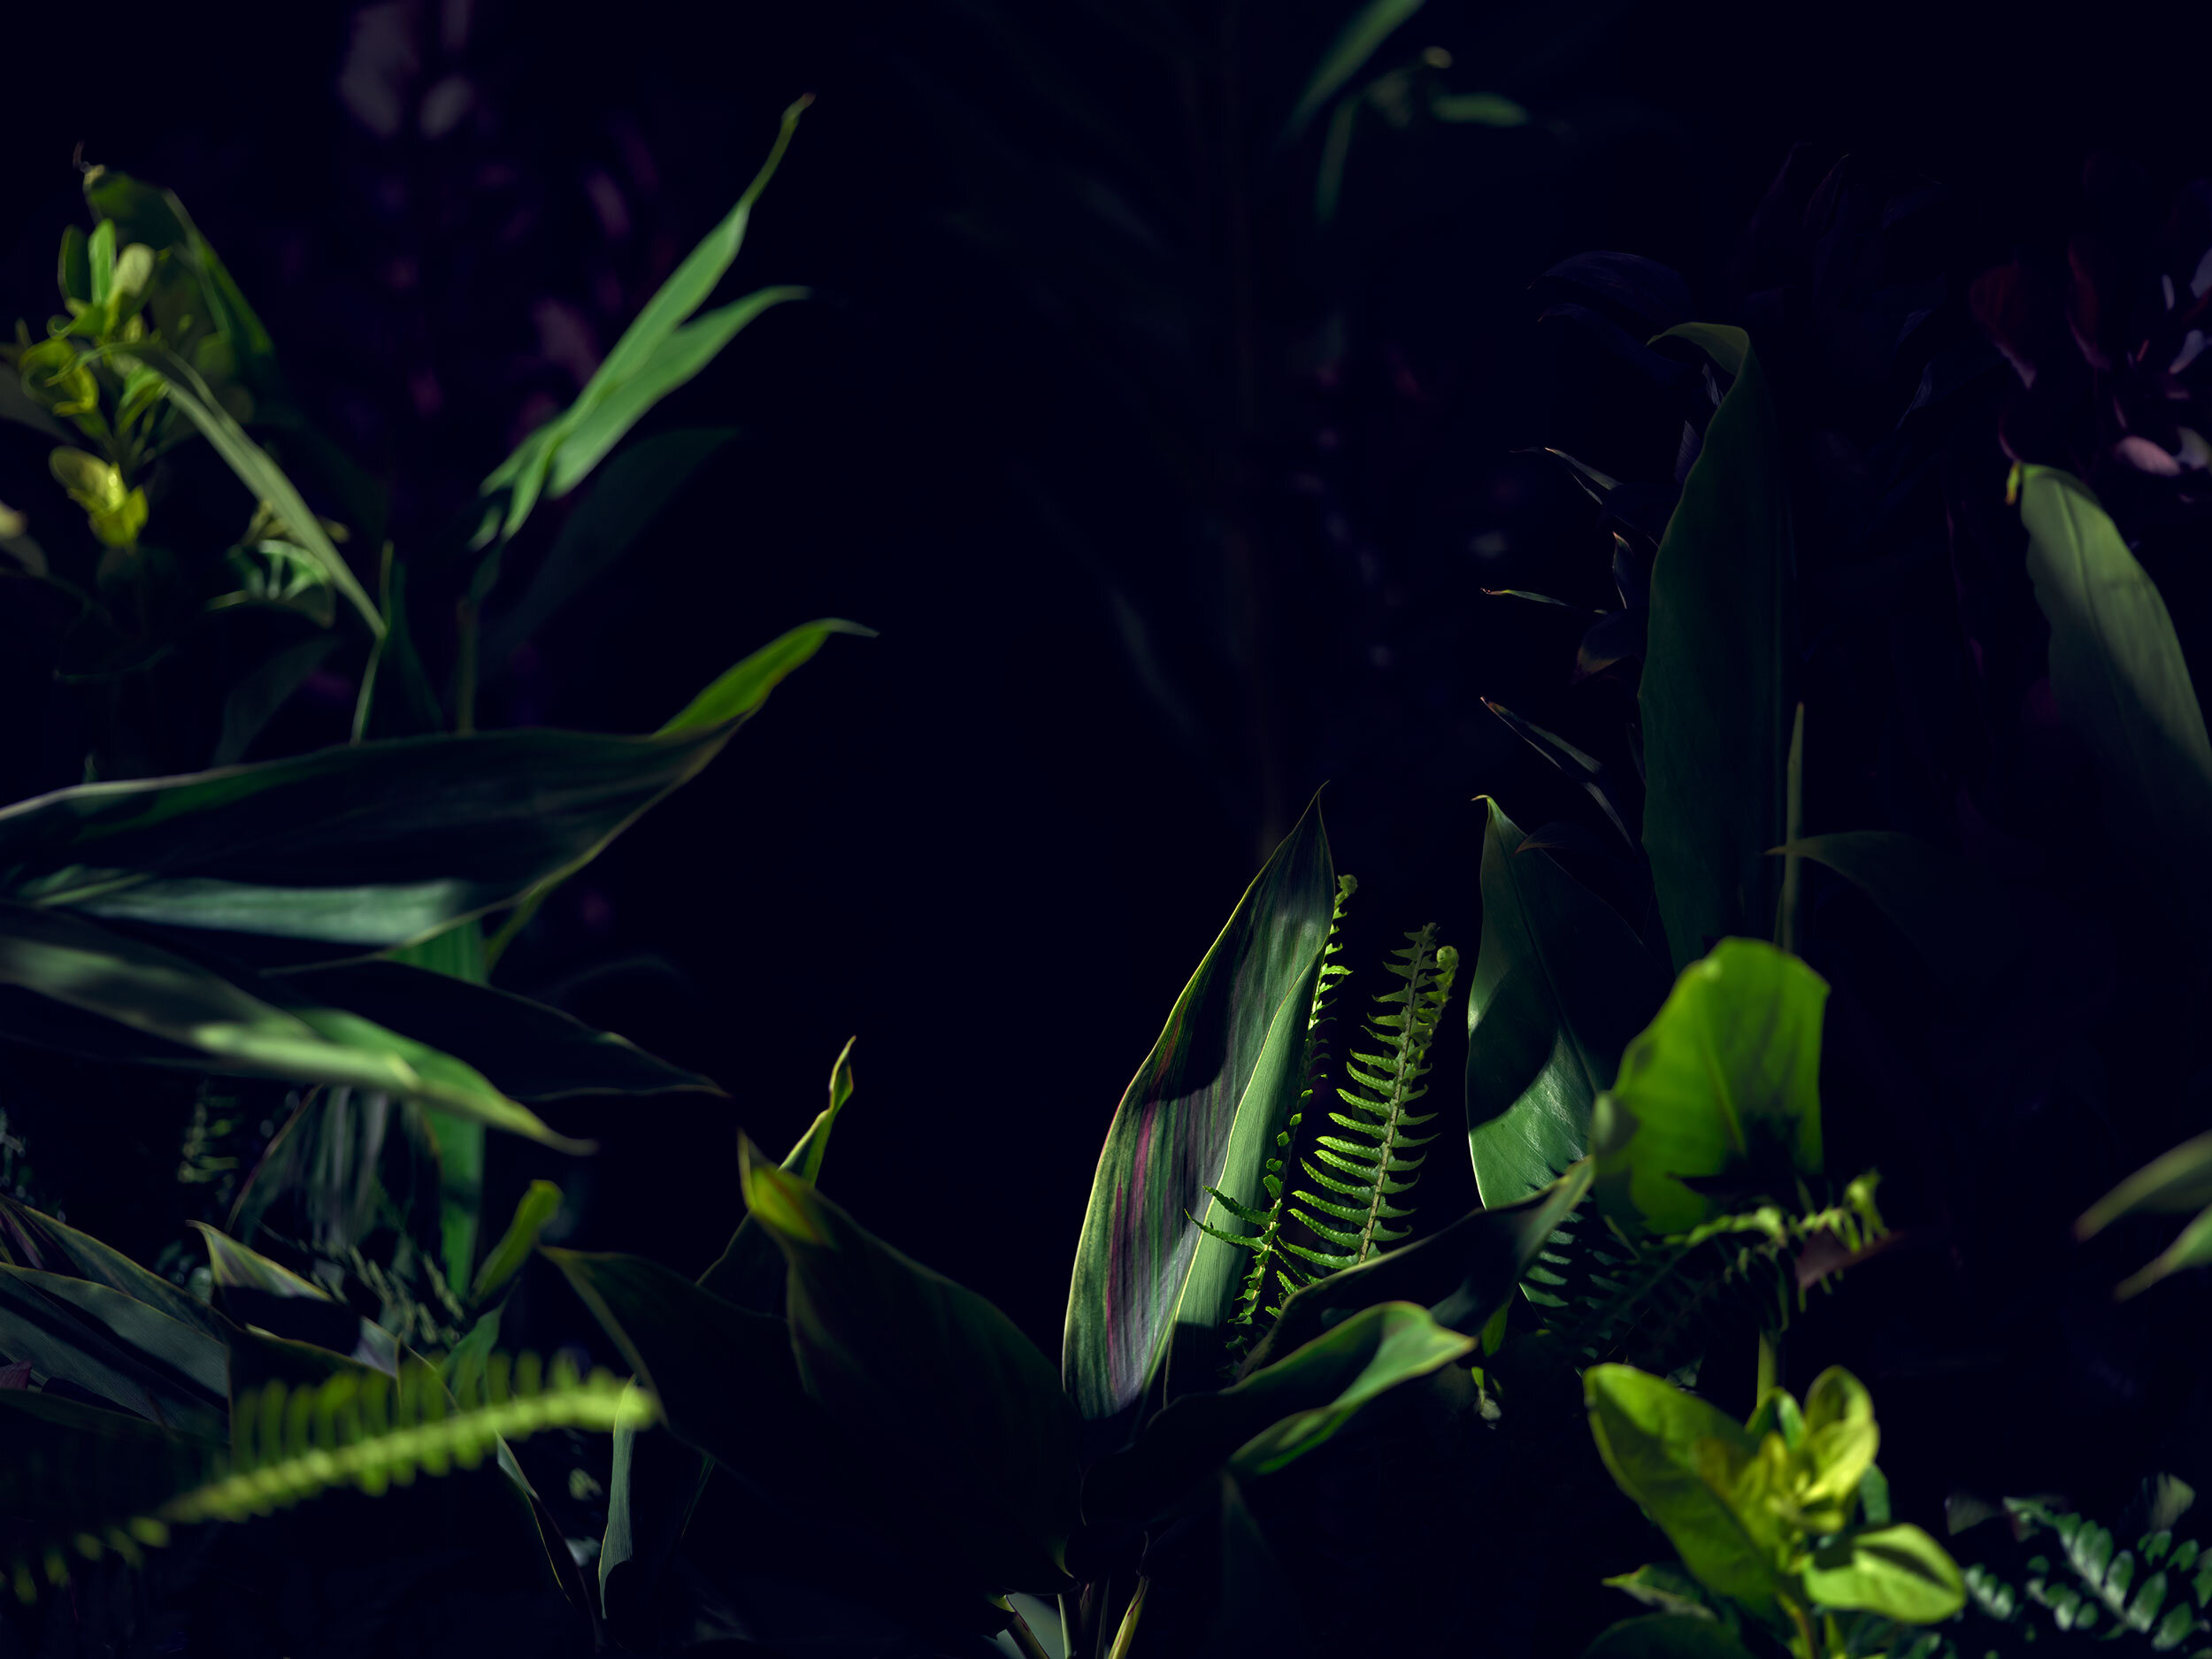 Botanical Shoot